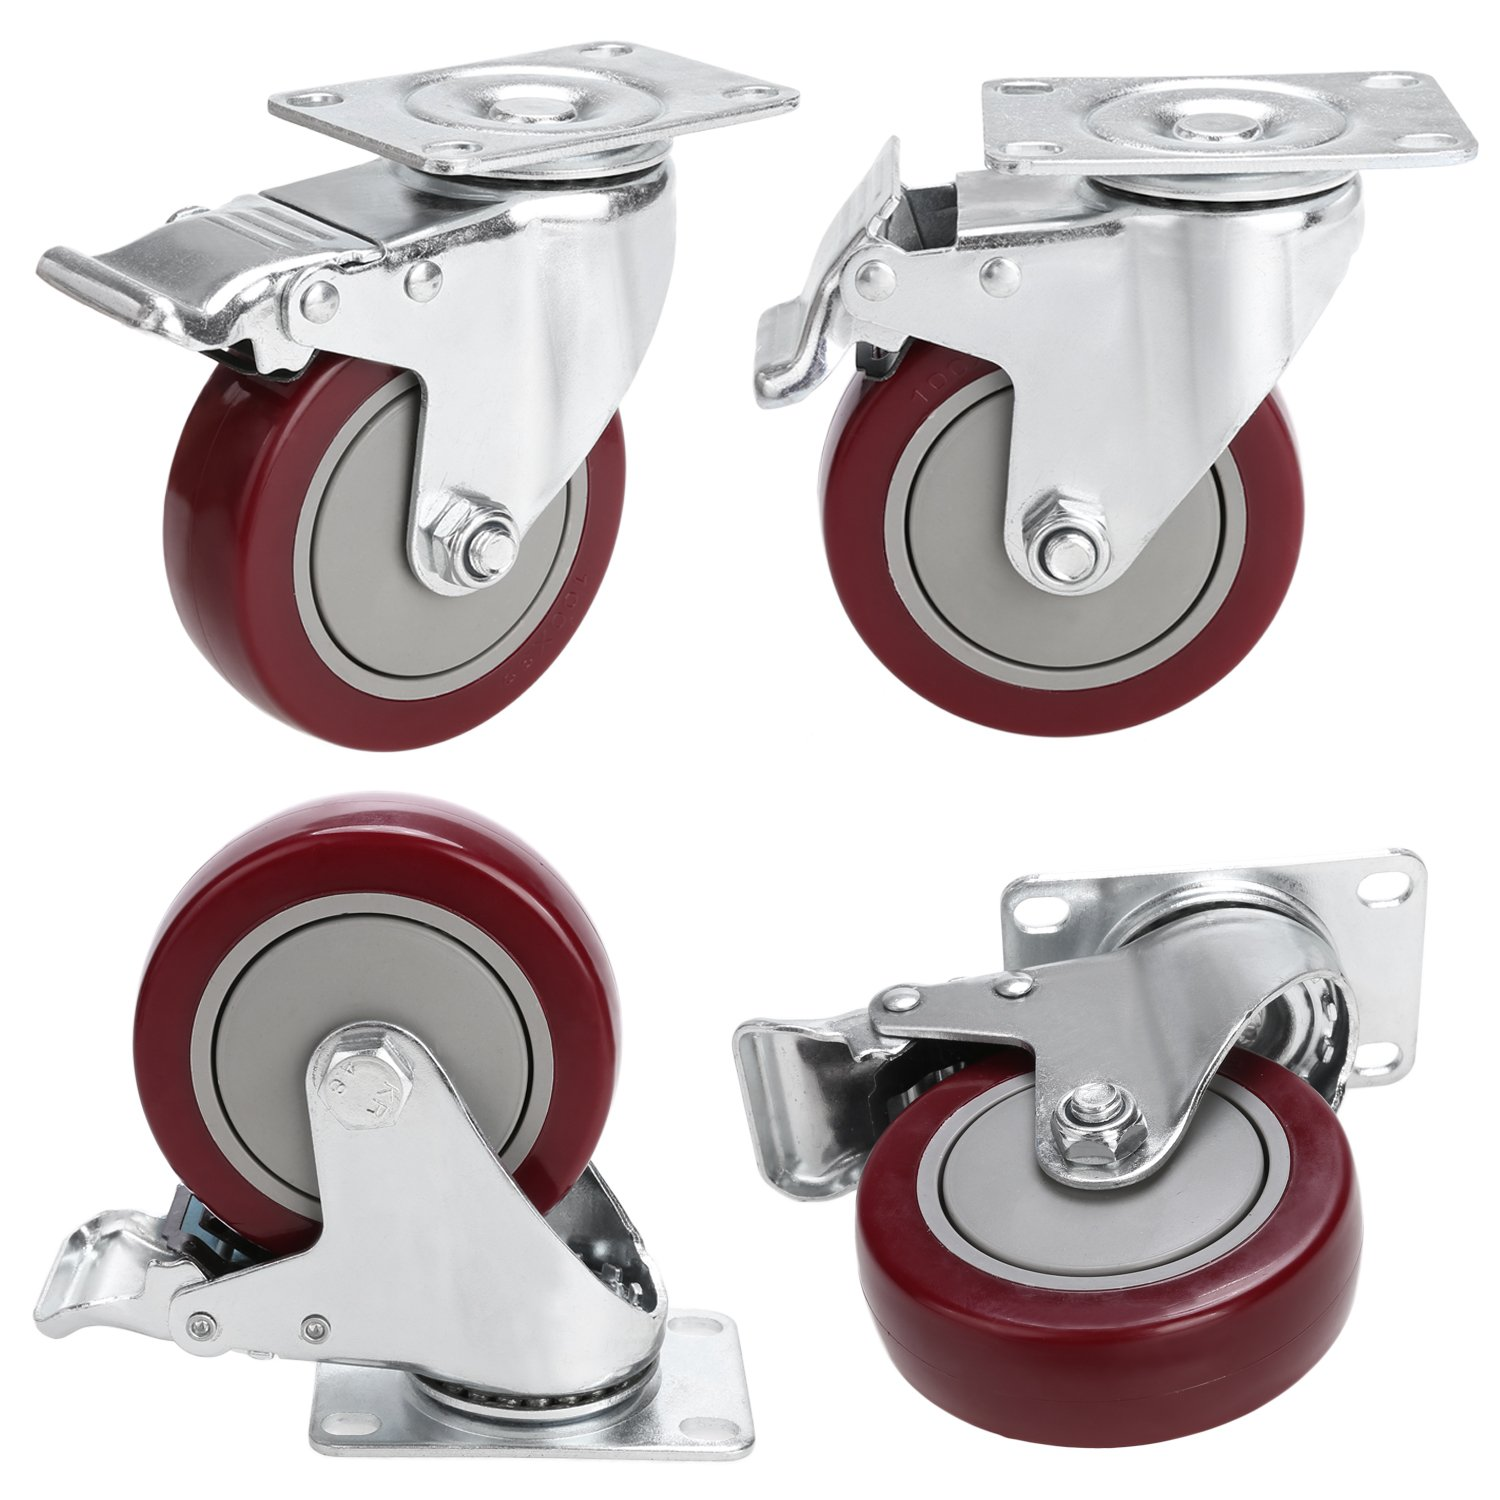 4'' PVC Heavy Duty Swivel Caster Wheels Lockable Ball Bearing 300lbs each (Set of 4) - Red